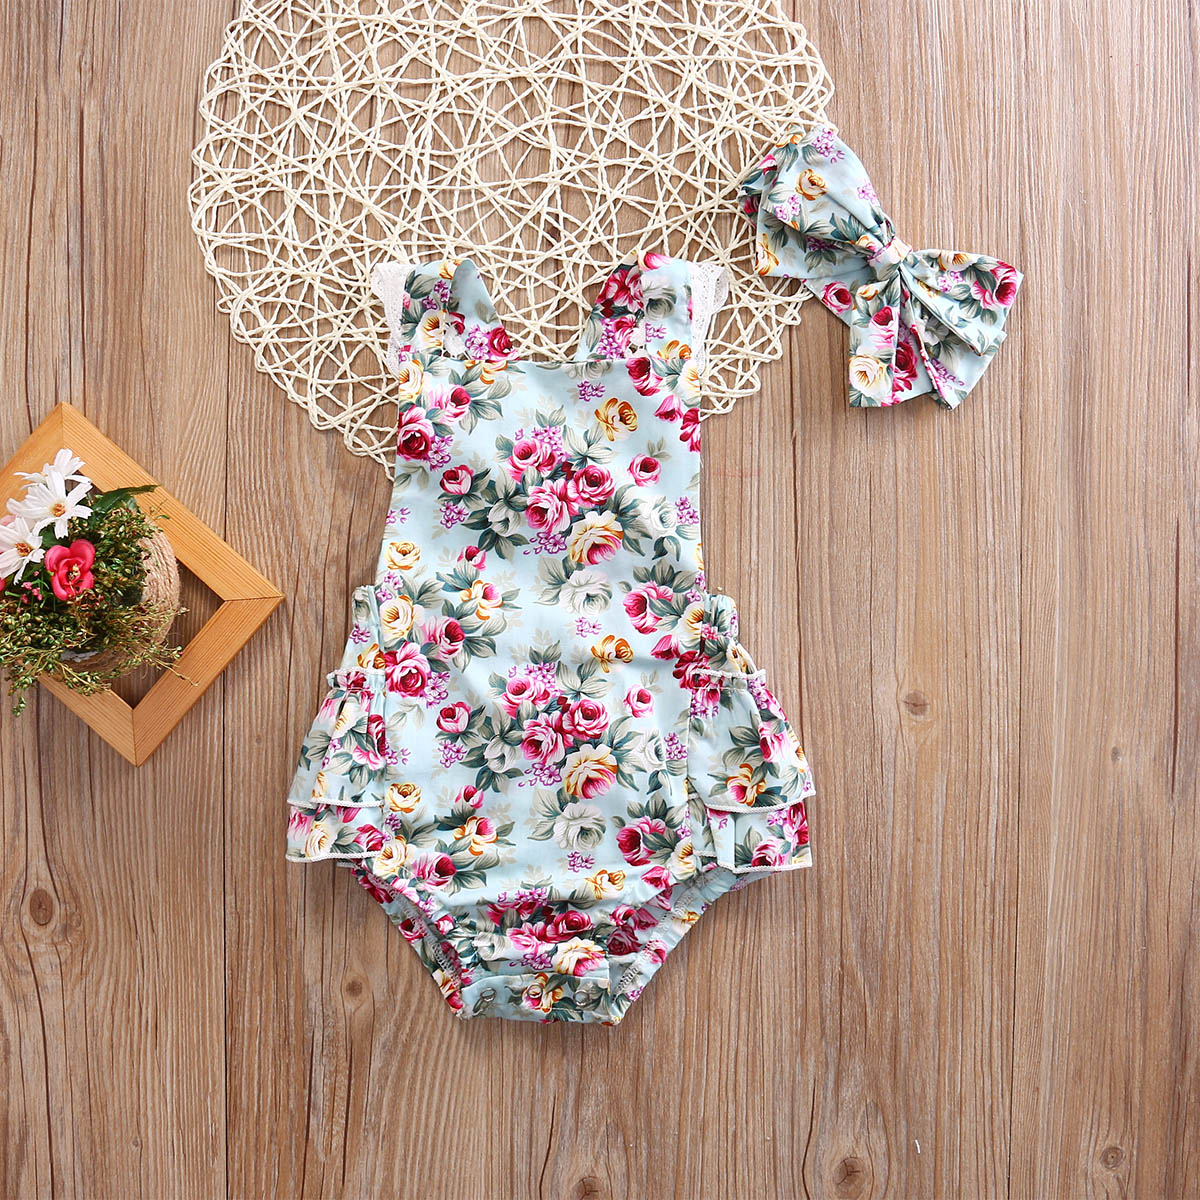 Emmababy Newborn Baby Girl Clothes Summer Sleeveless Flower Print Ruffle Romper Jumpsuit Headband 2Pcs Outfits Sunsuit Clothes